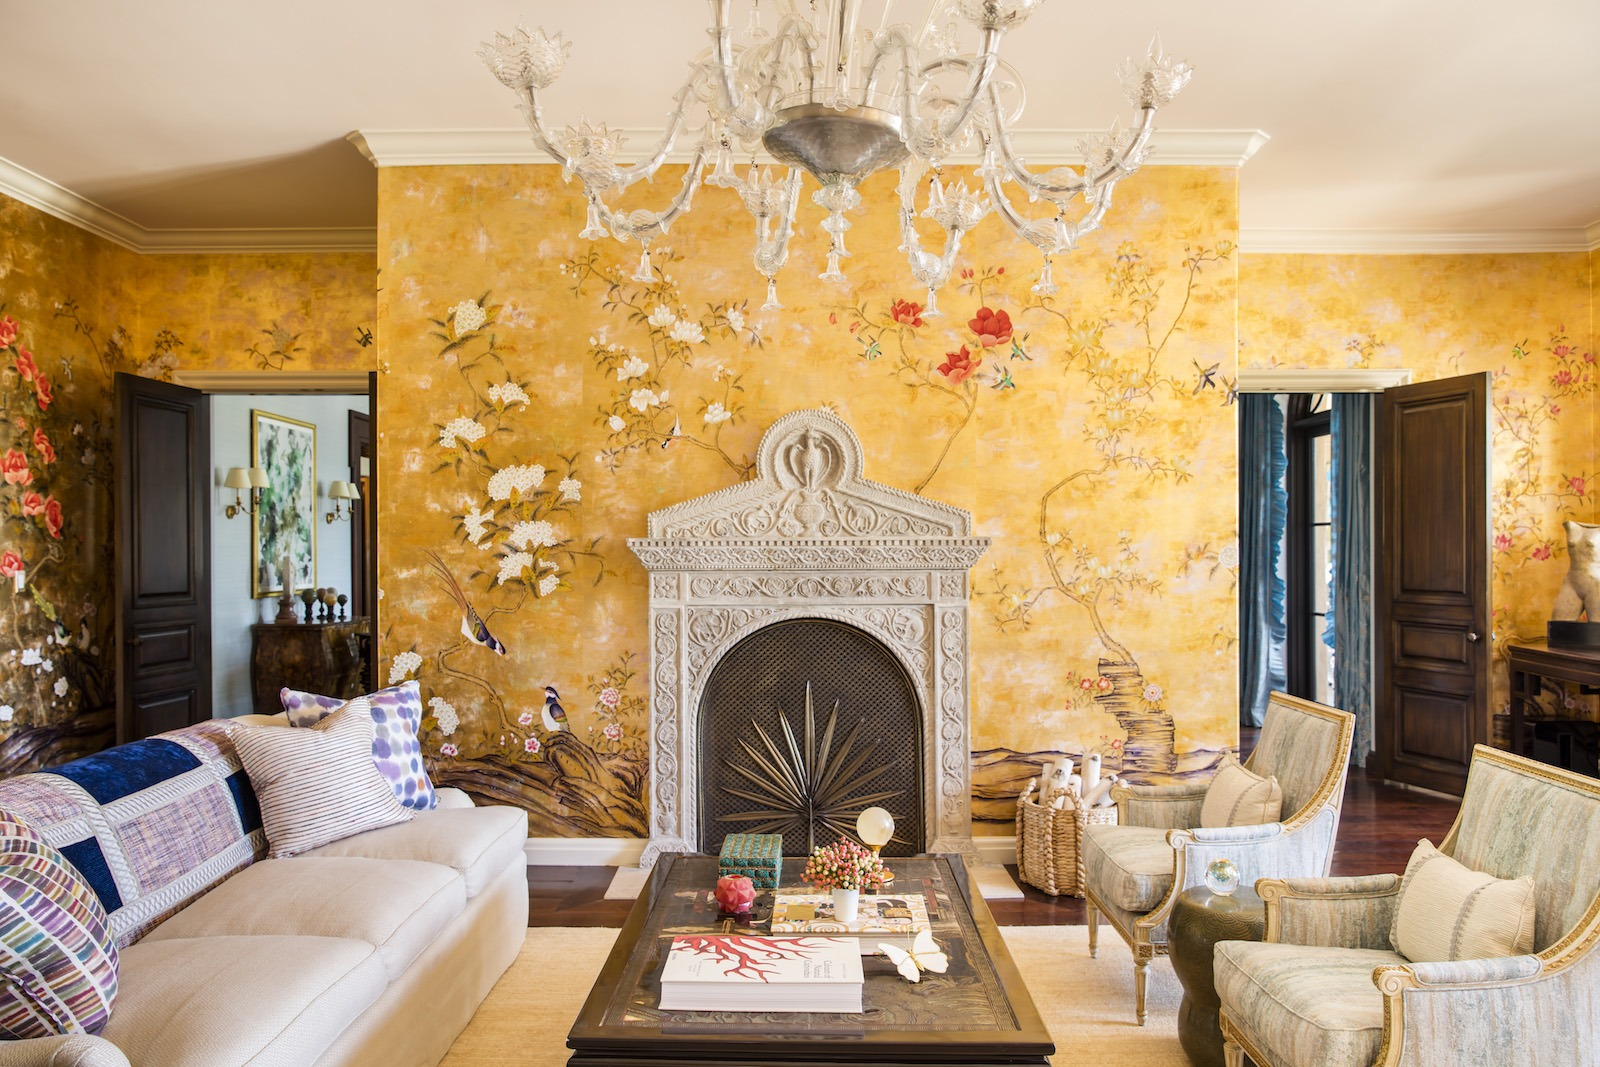 Beverly Hills Interior Designer - Christine Markatos Design